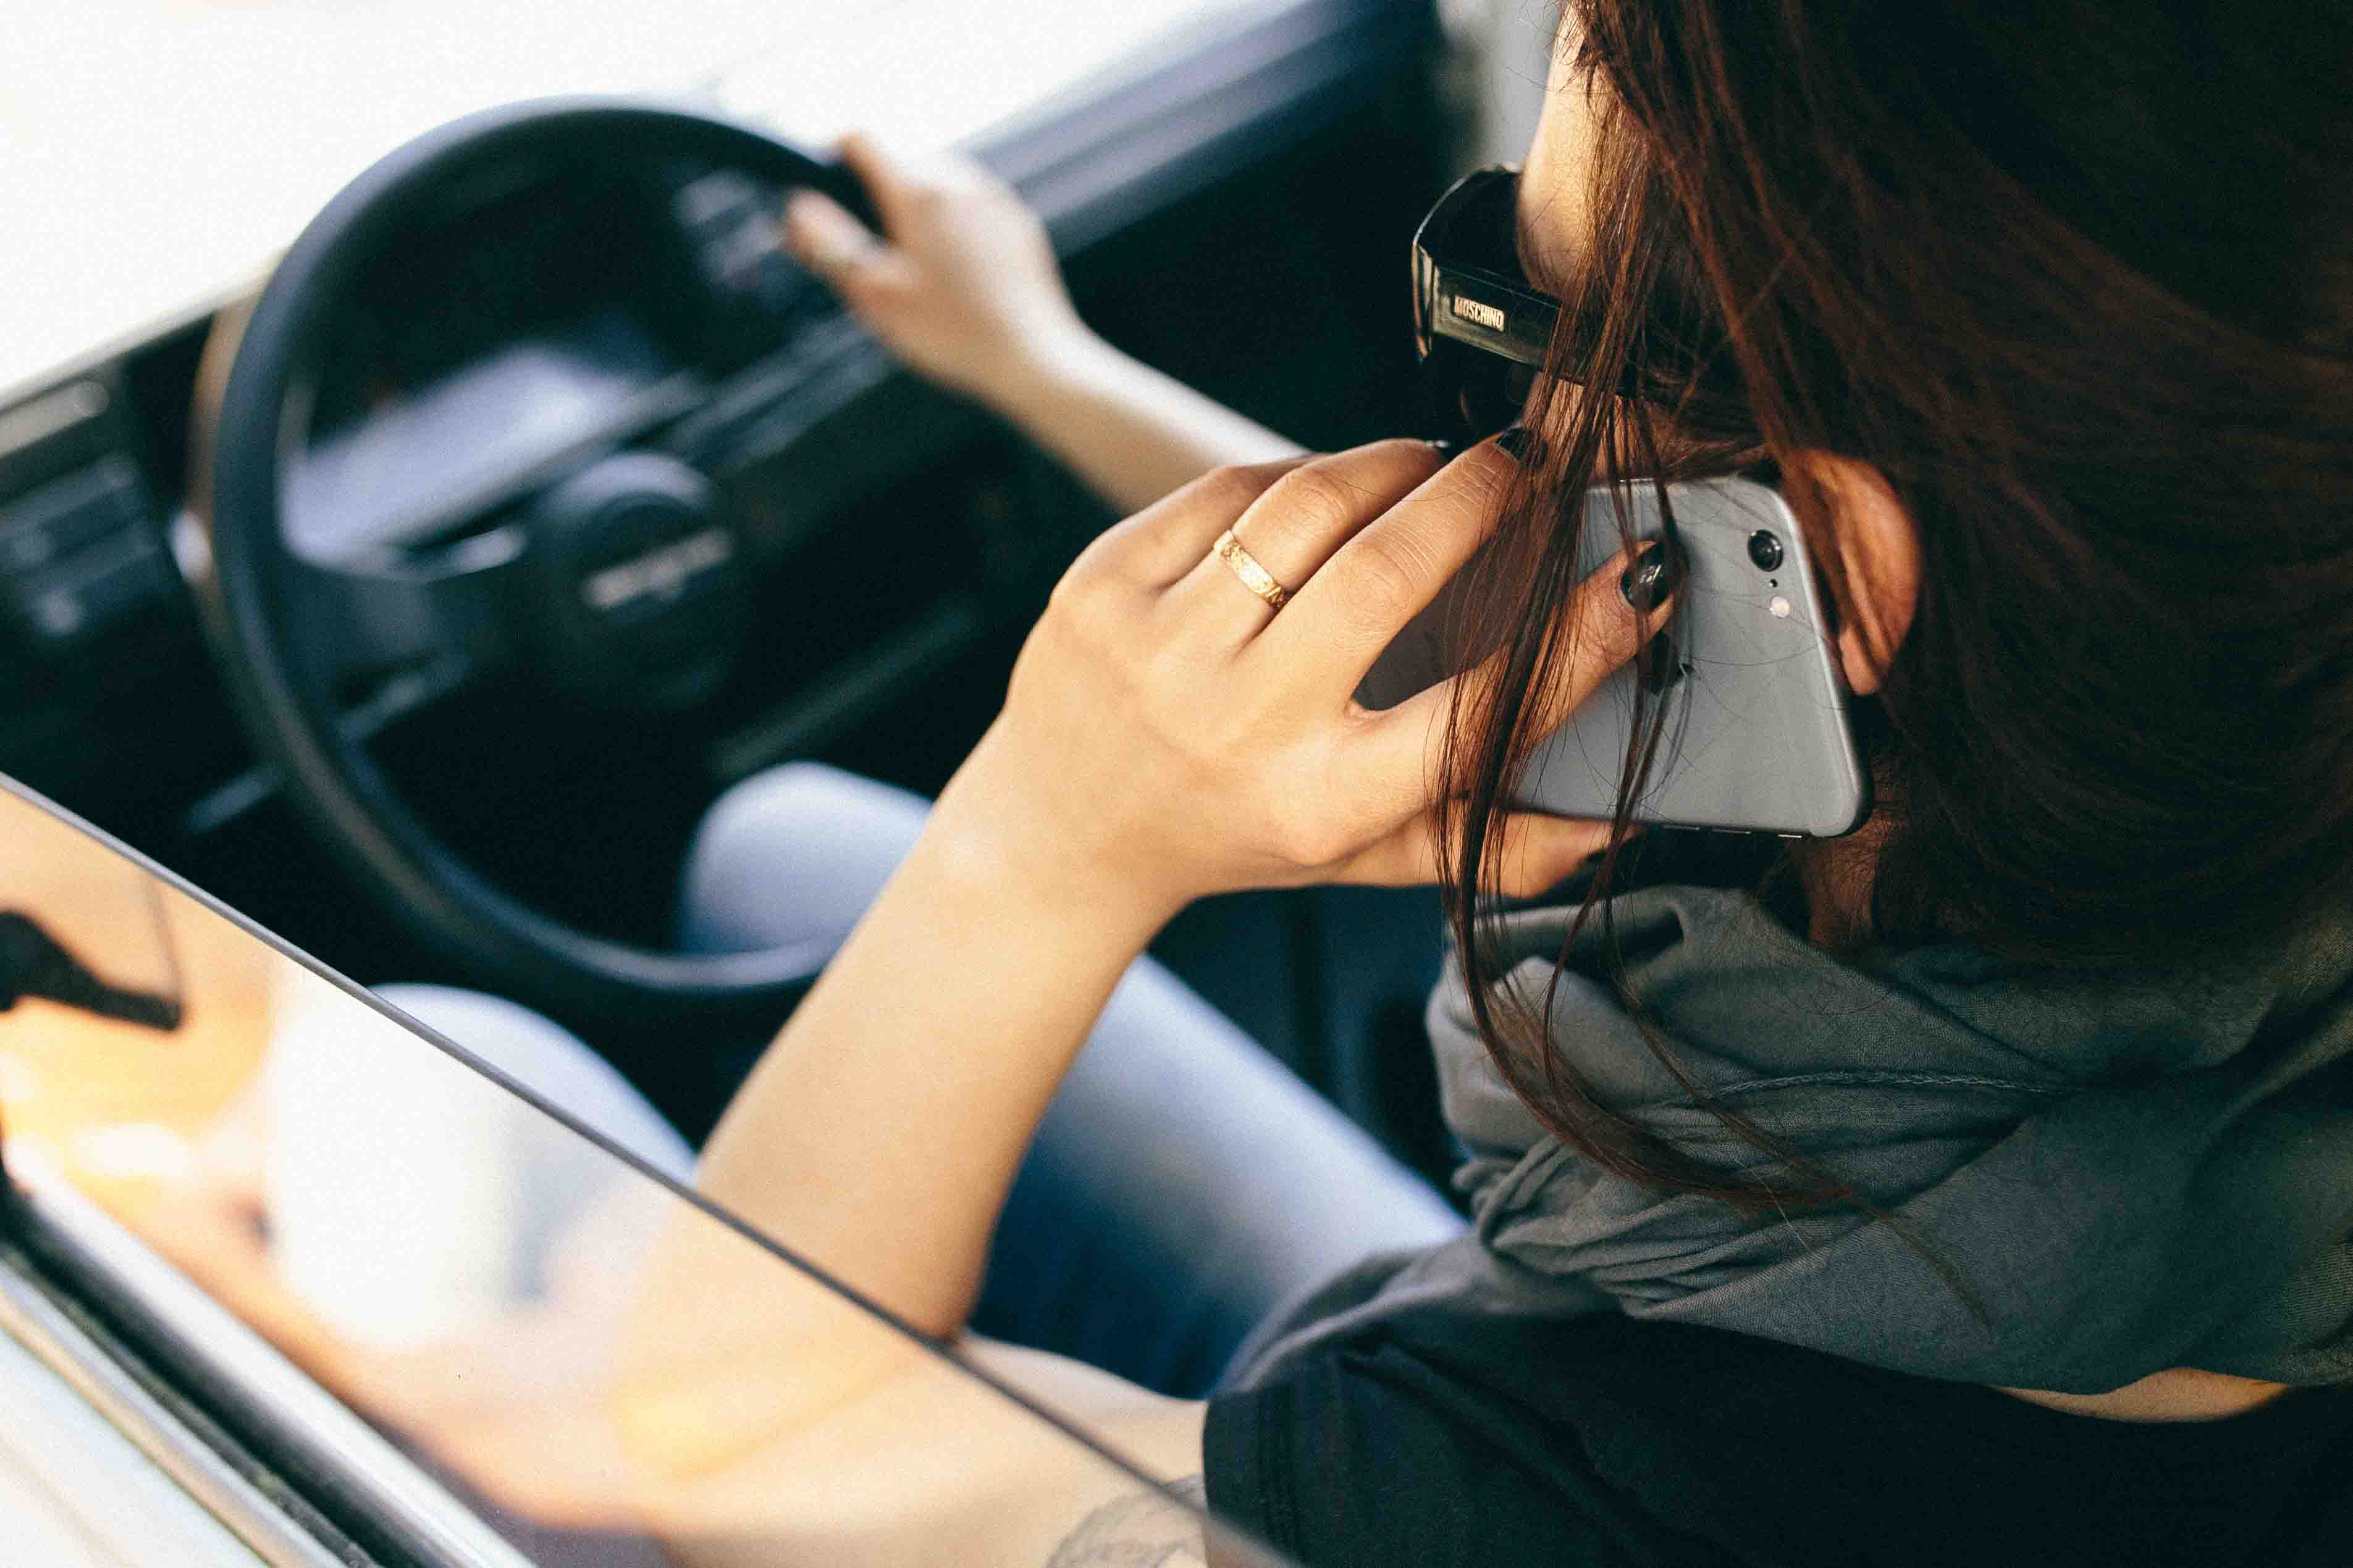 kaboompics-com_woman-talking-on-a-mobile-phone-while-driving-car